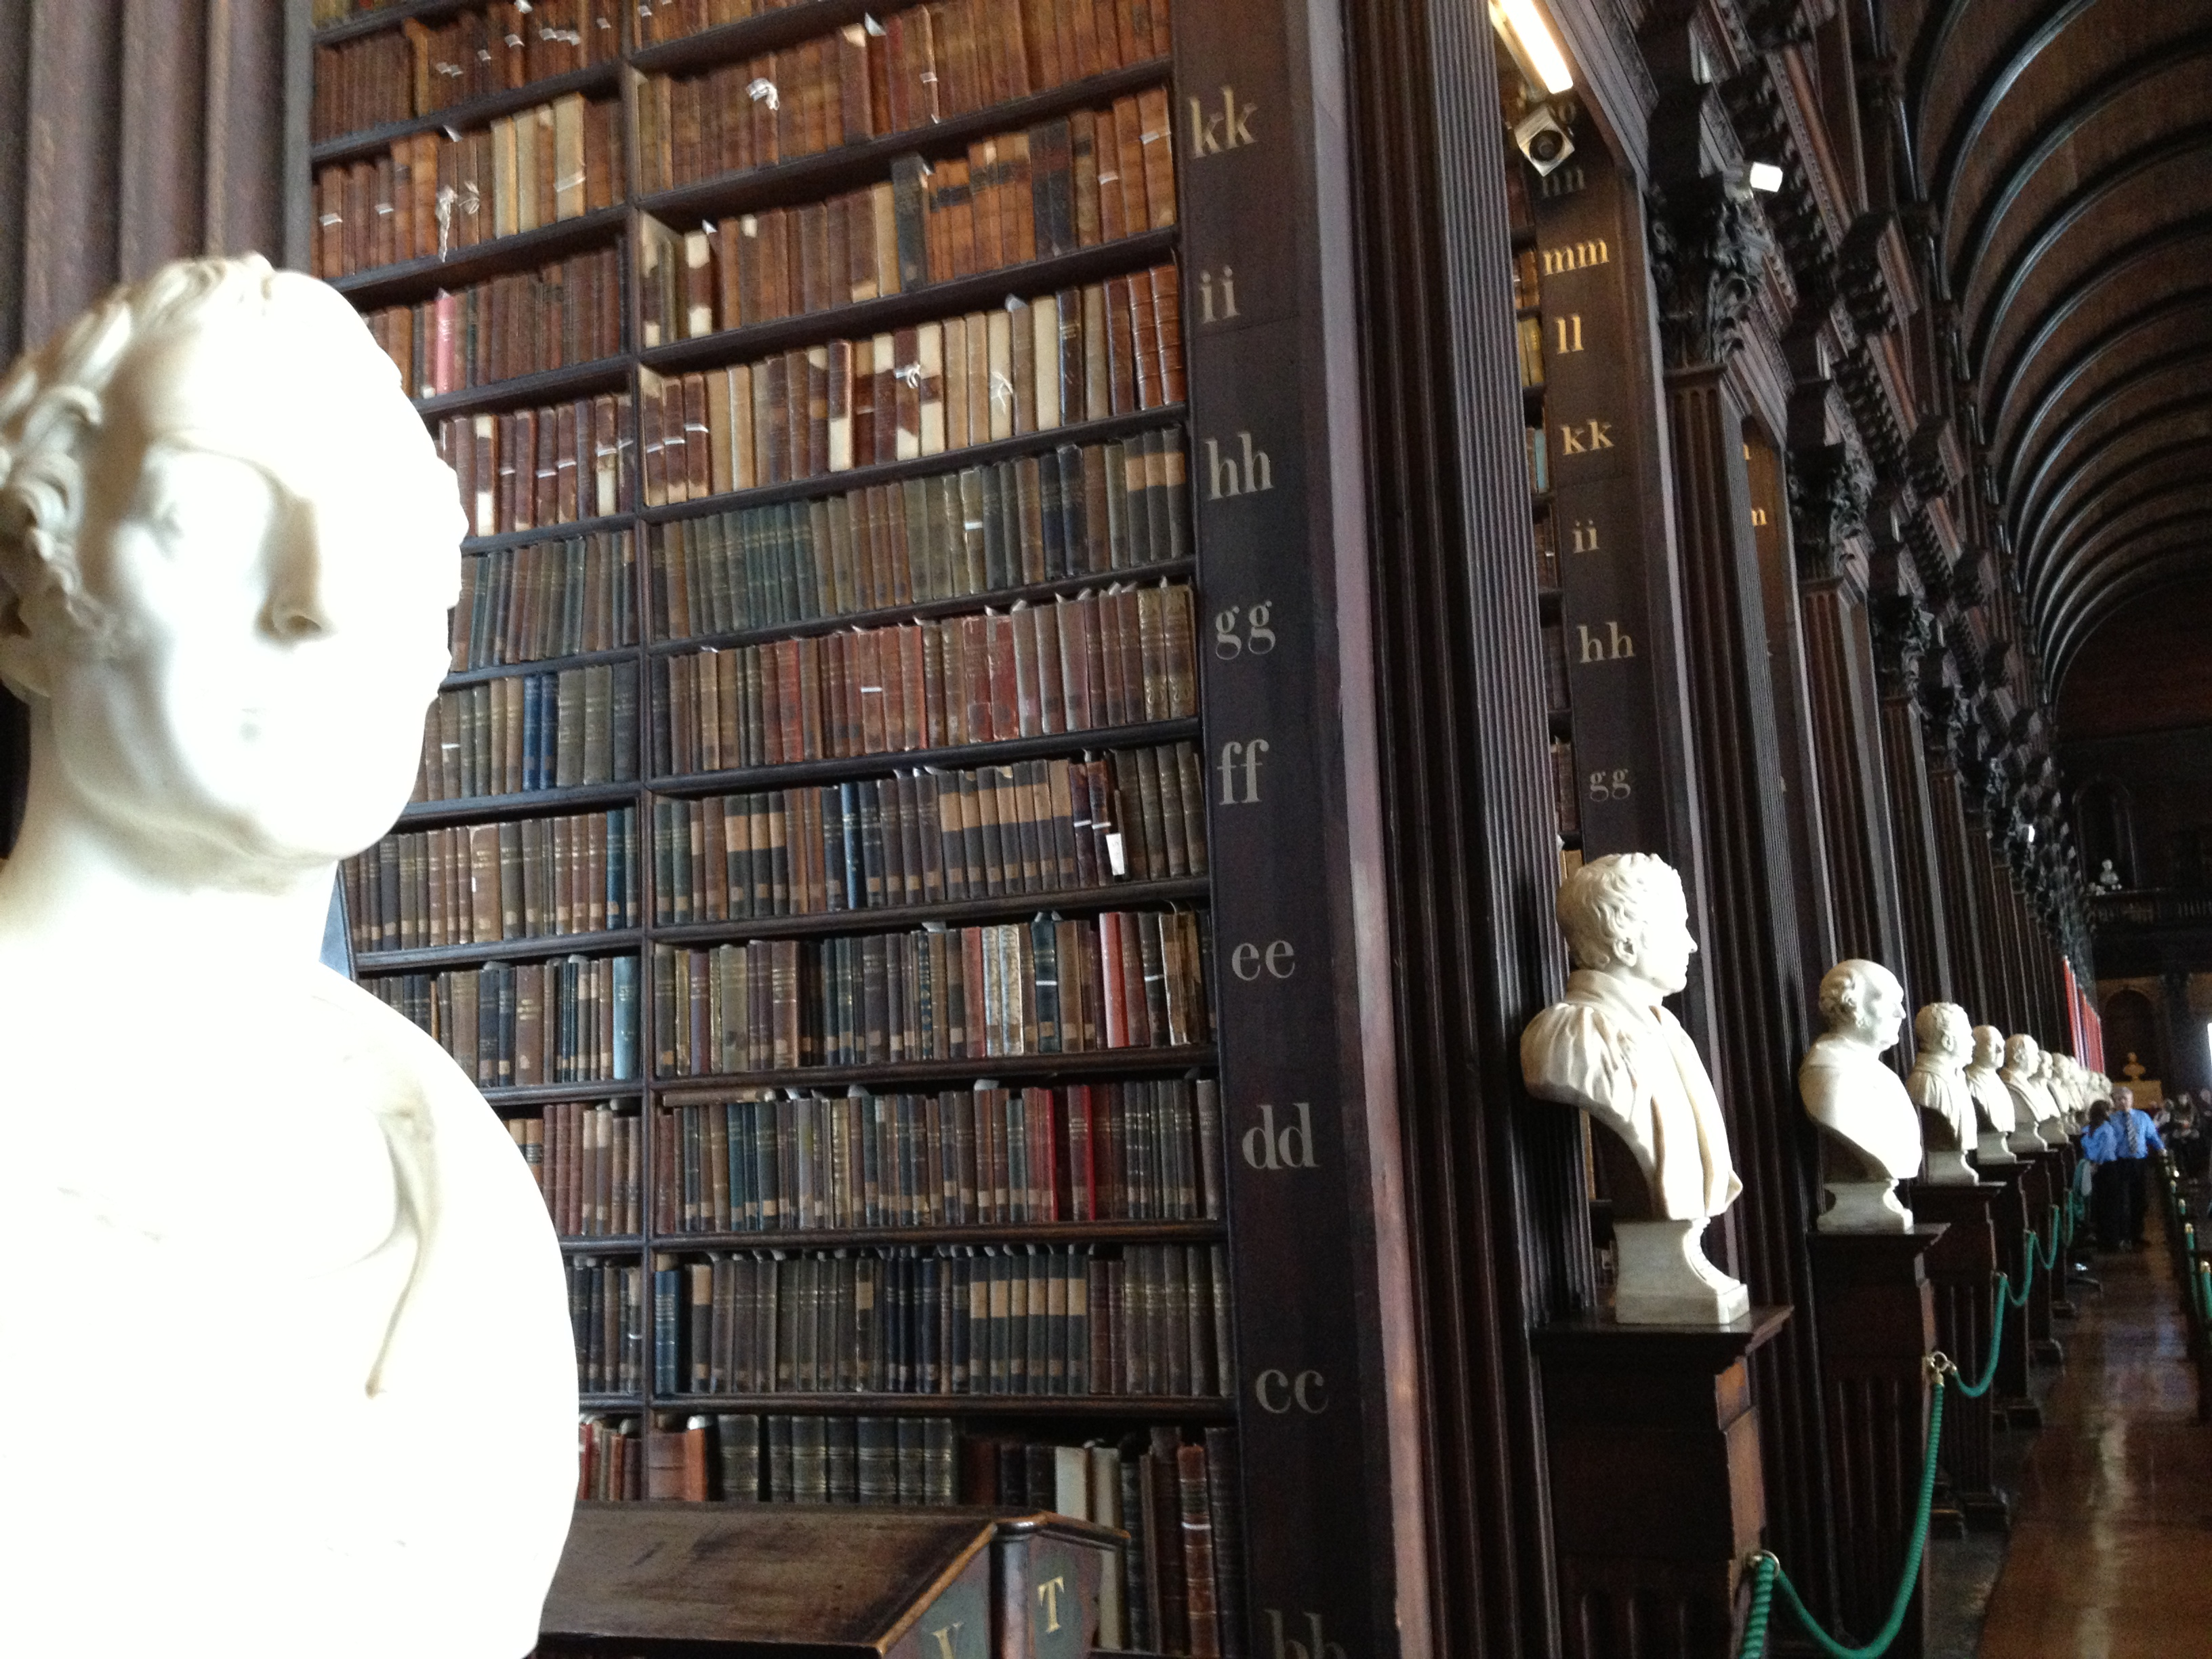 The Pantheon in the Library- the Sculpture Busts of Long Room